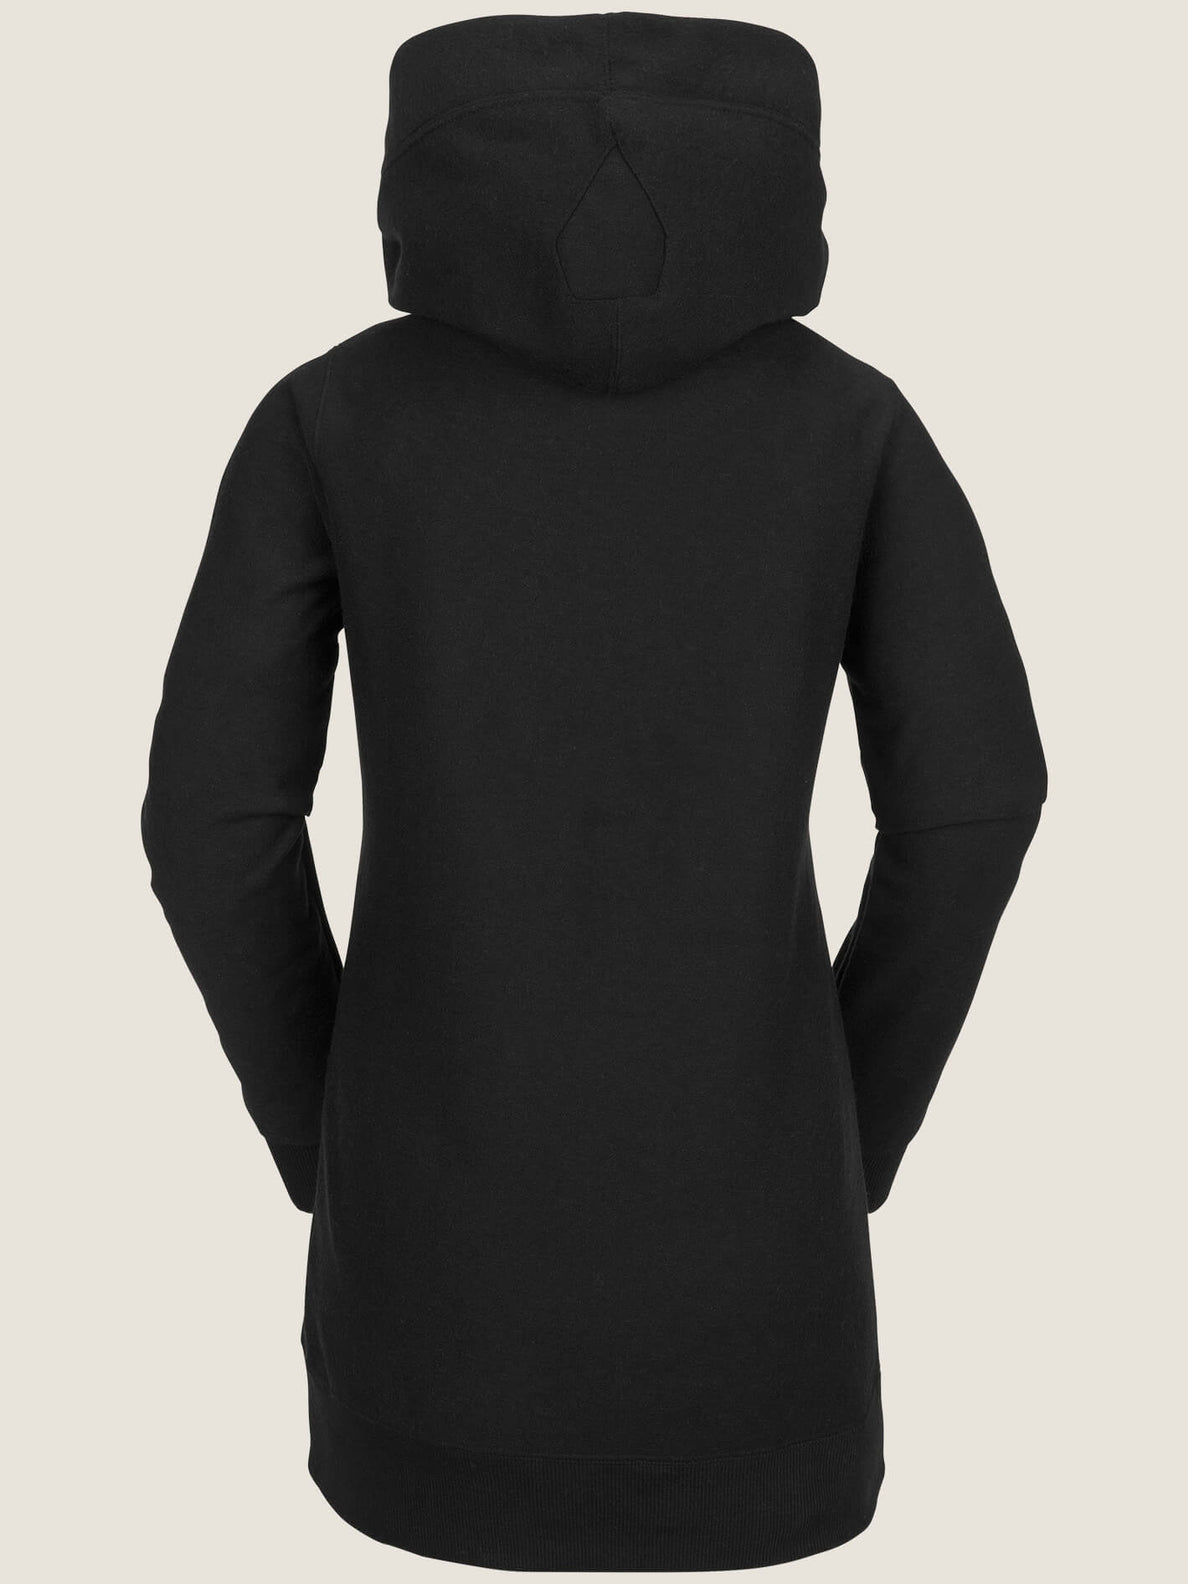 Riding Hoodie In Black, Back View